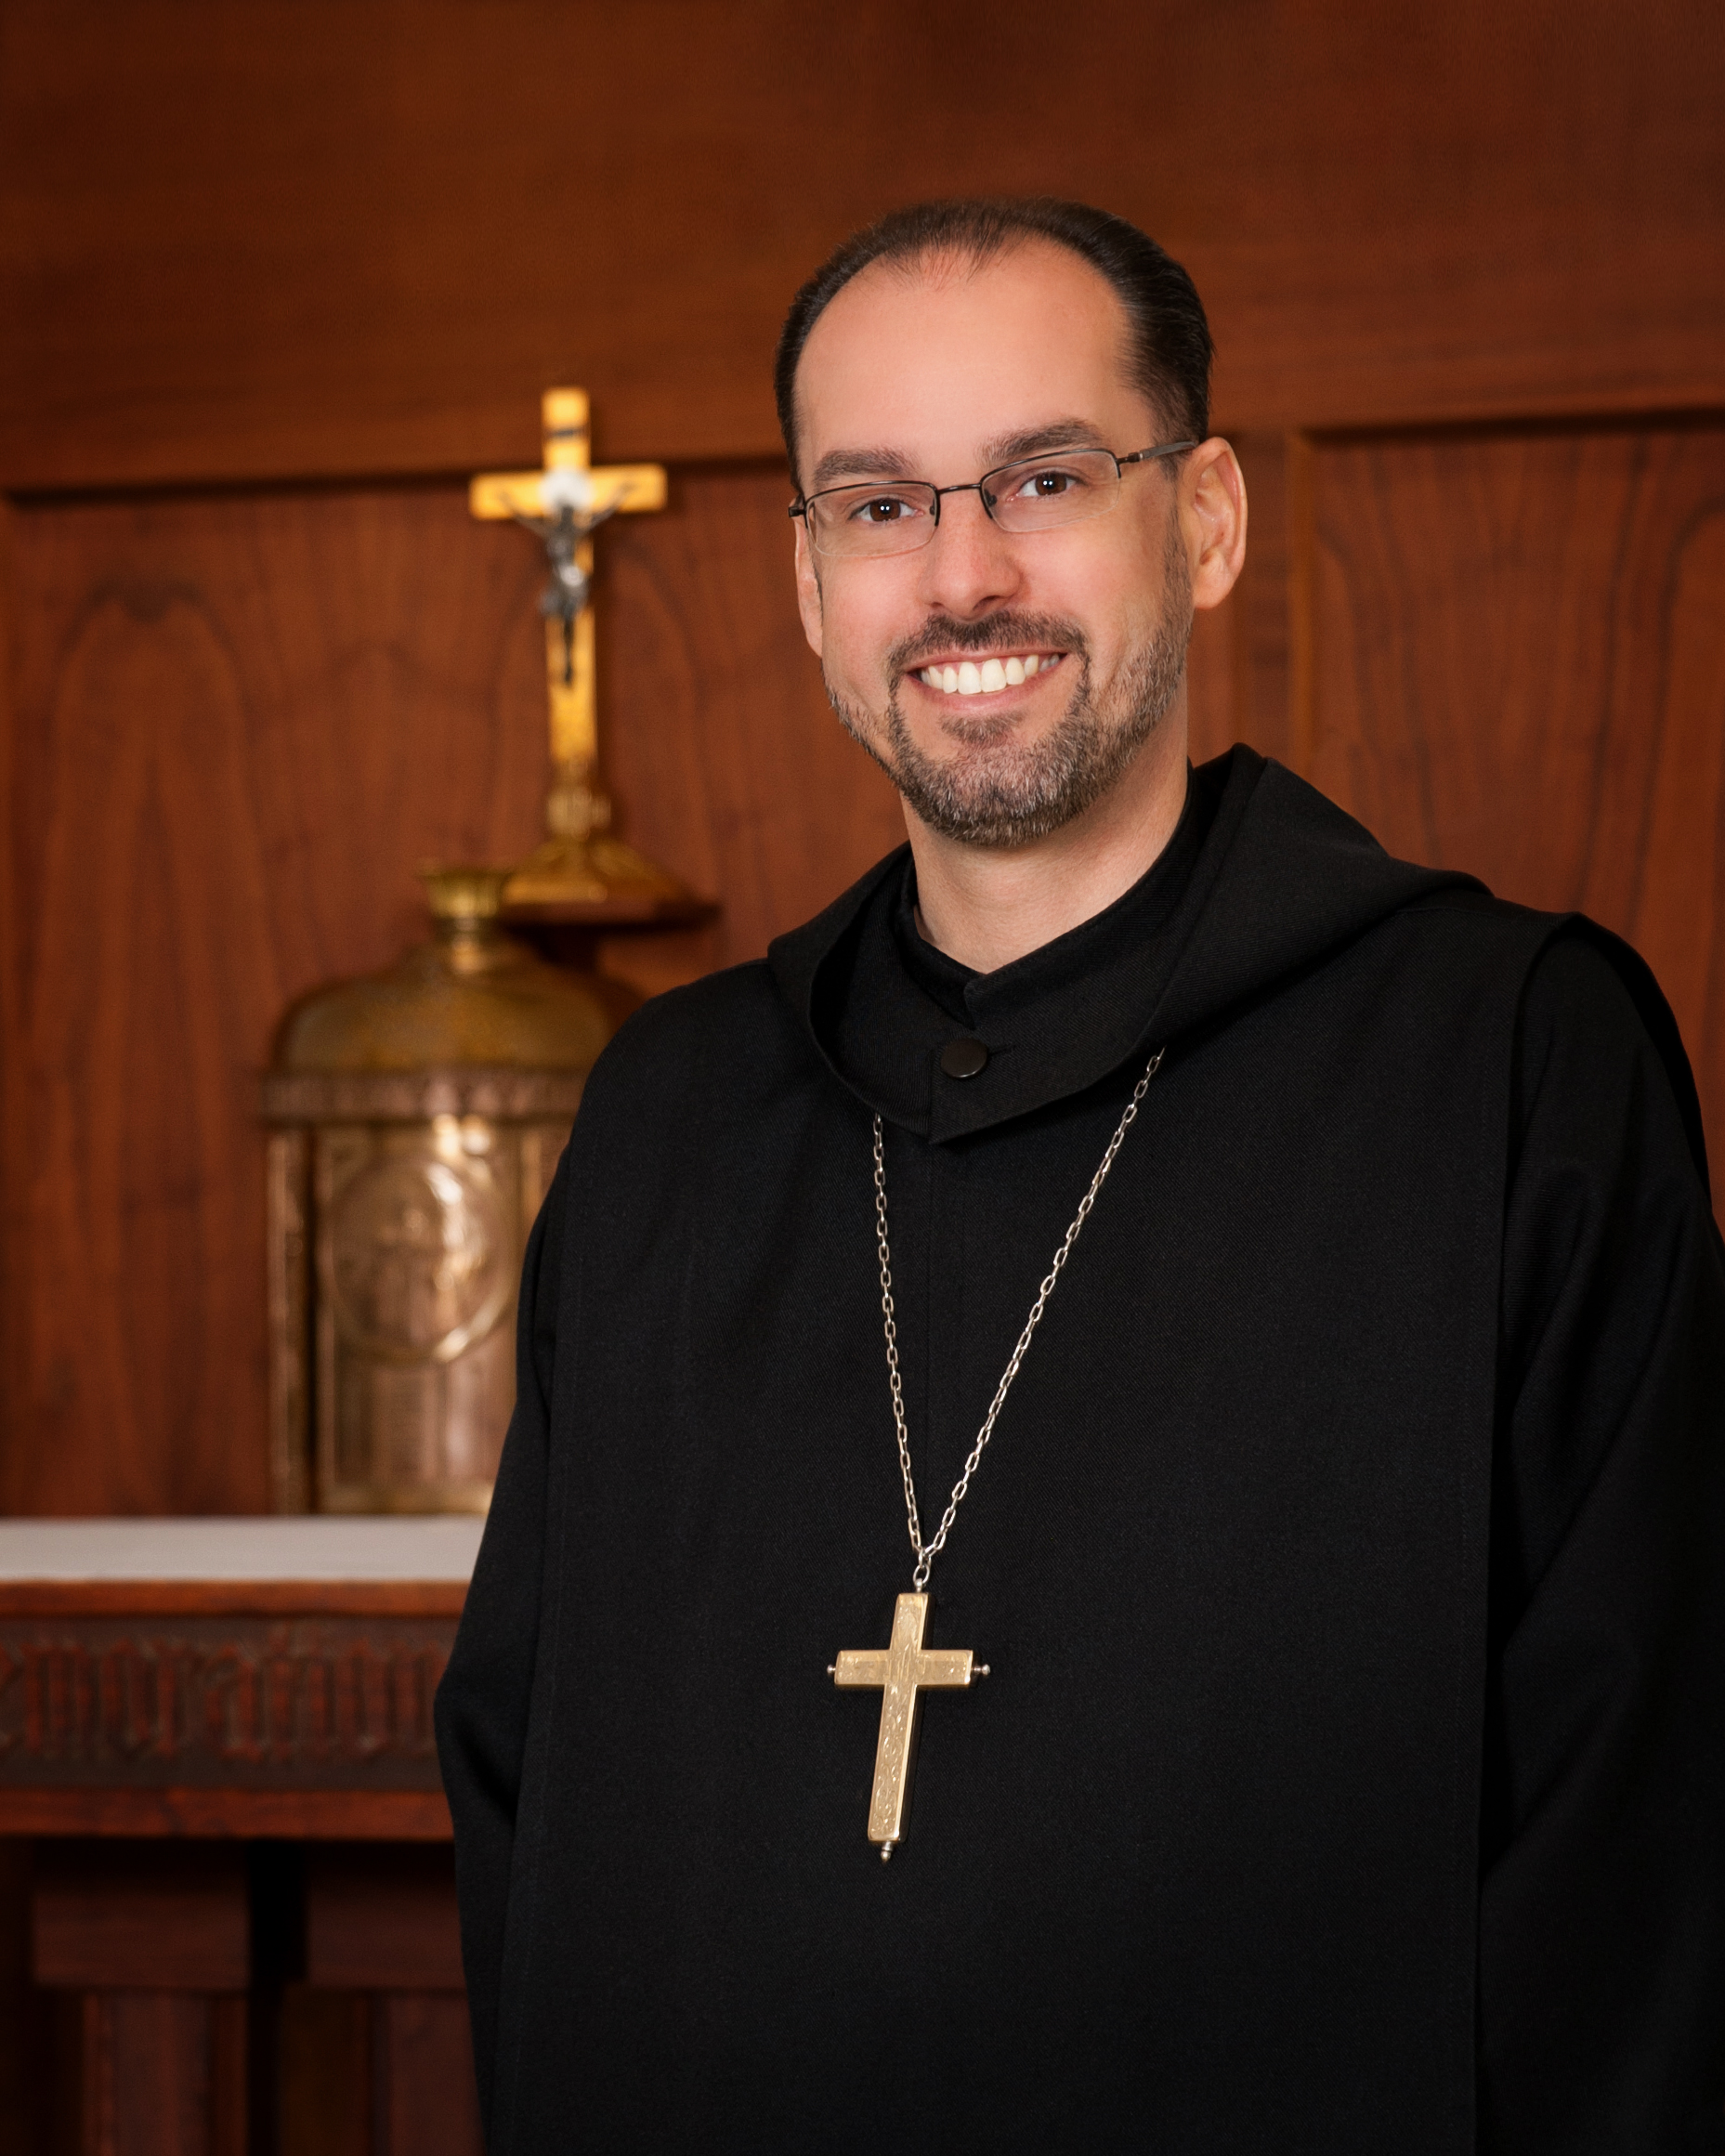 A reflection by Abbot James Albers, OSB